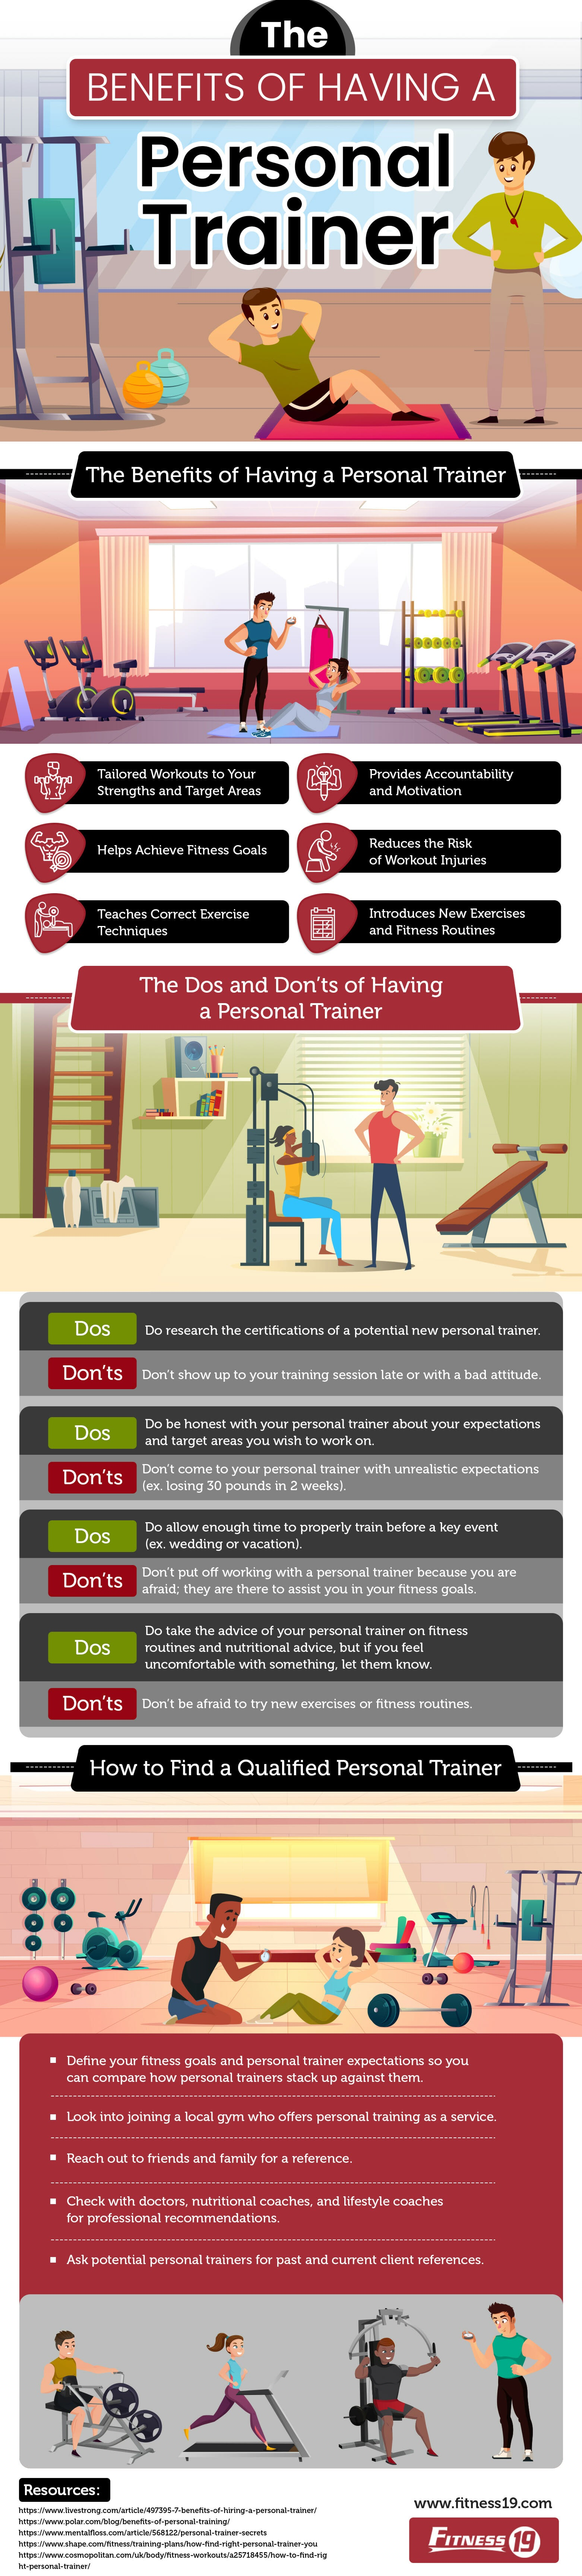 the-benefits-of-having-a-personal-trainer-infographic